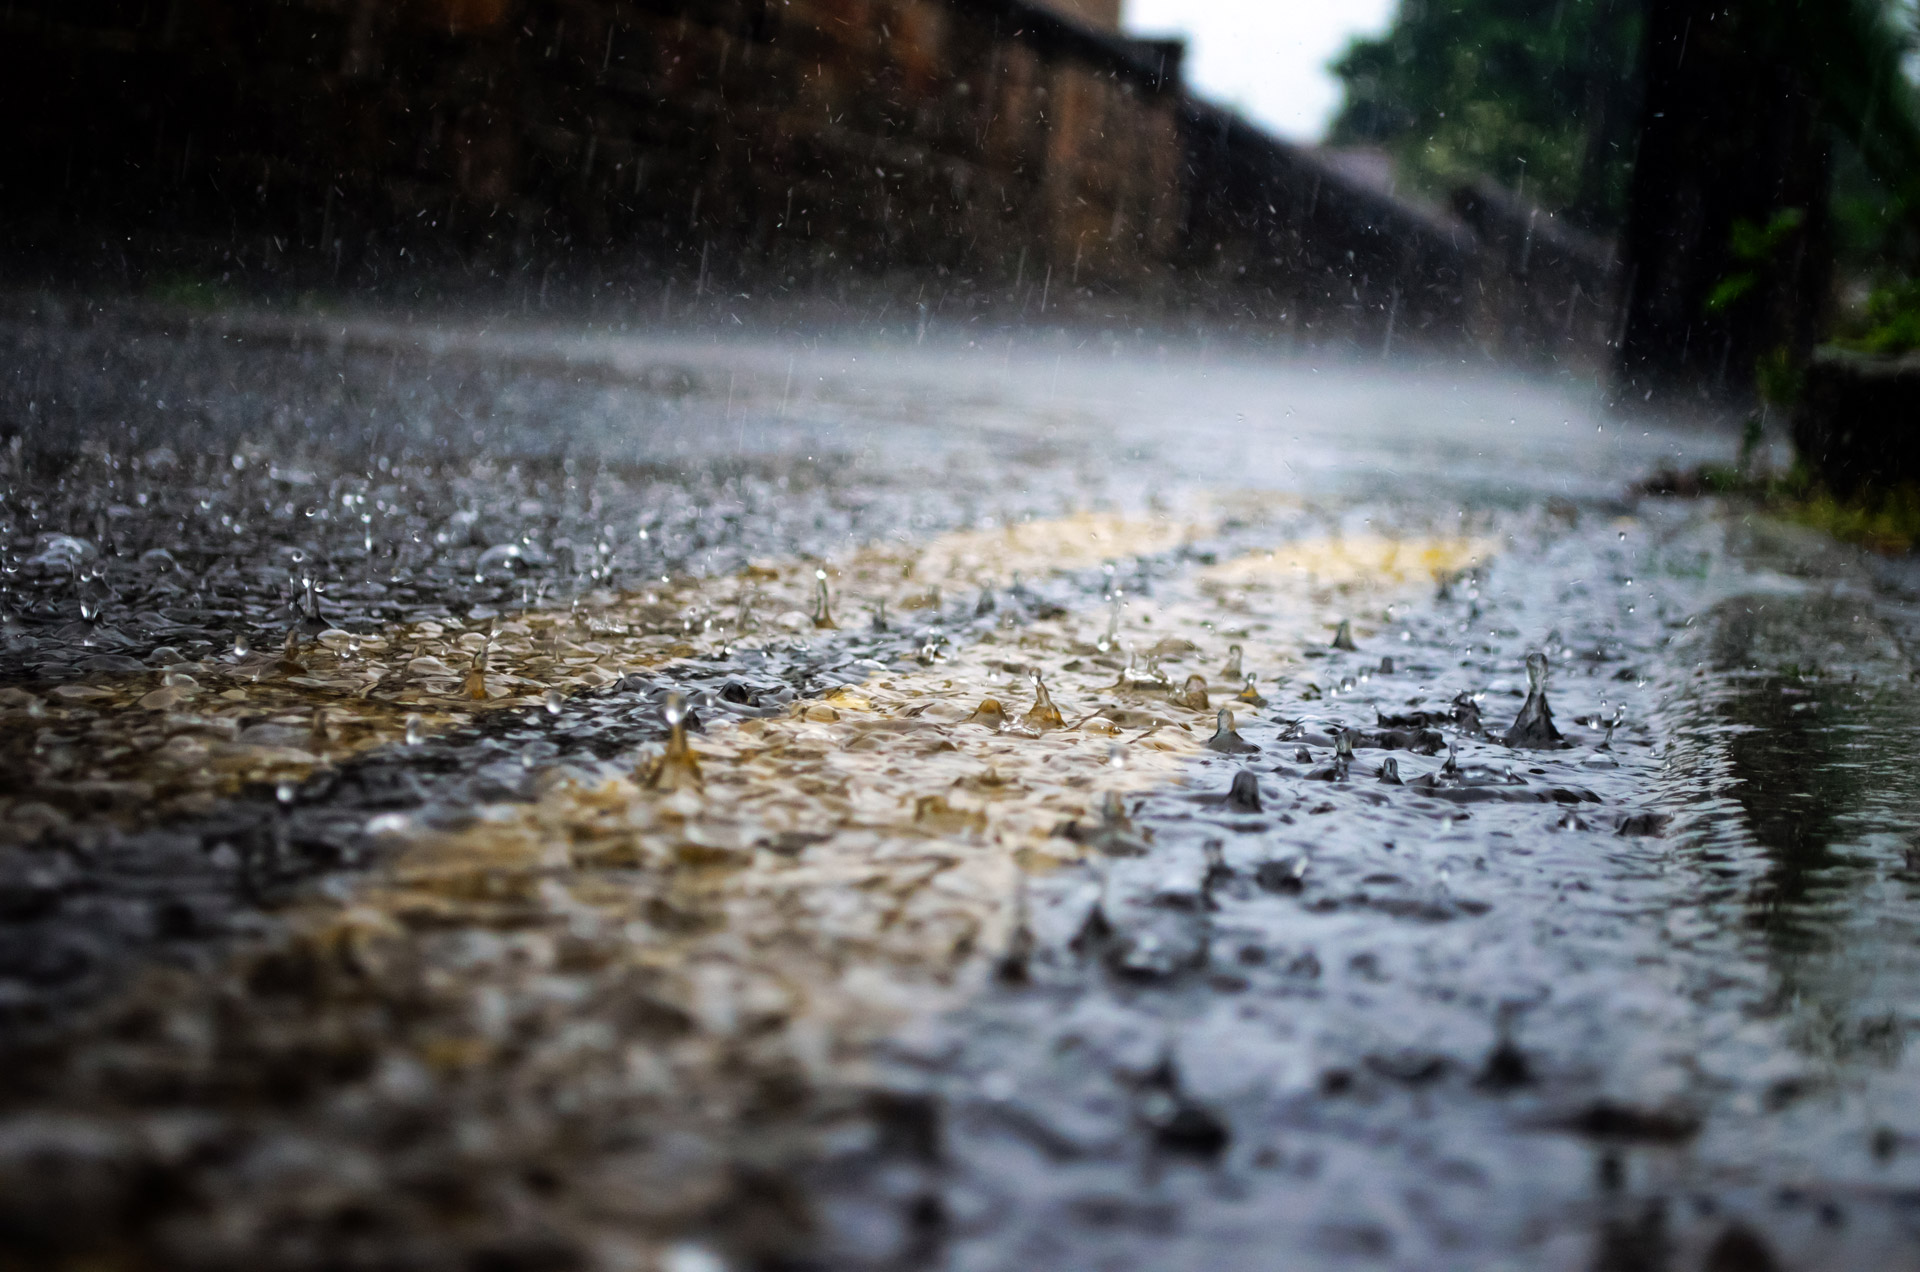 Close-up of road pavement with rain drops falling rapidly